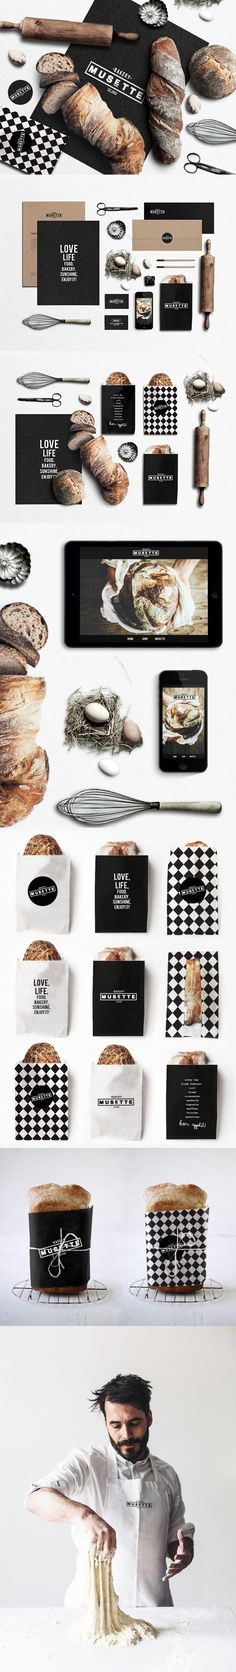 Musette bakery Identity, packaging, branding.